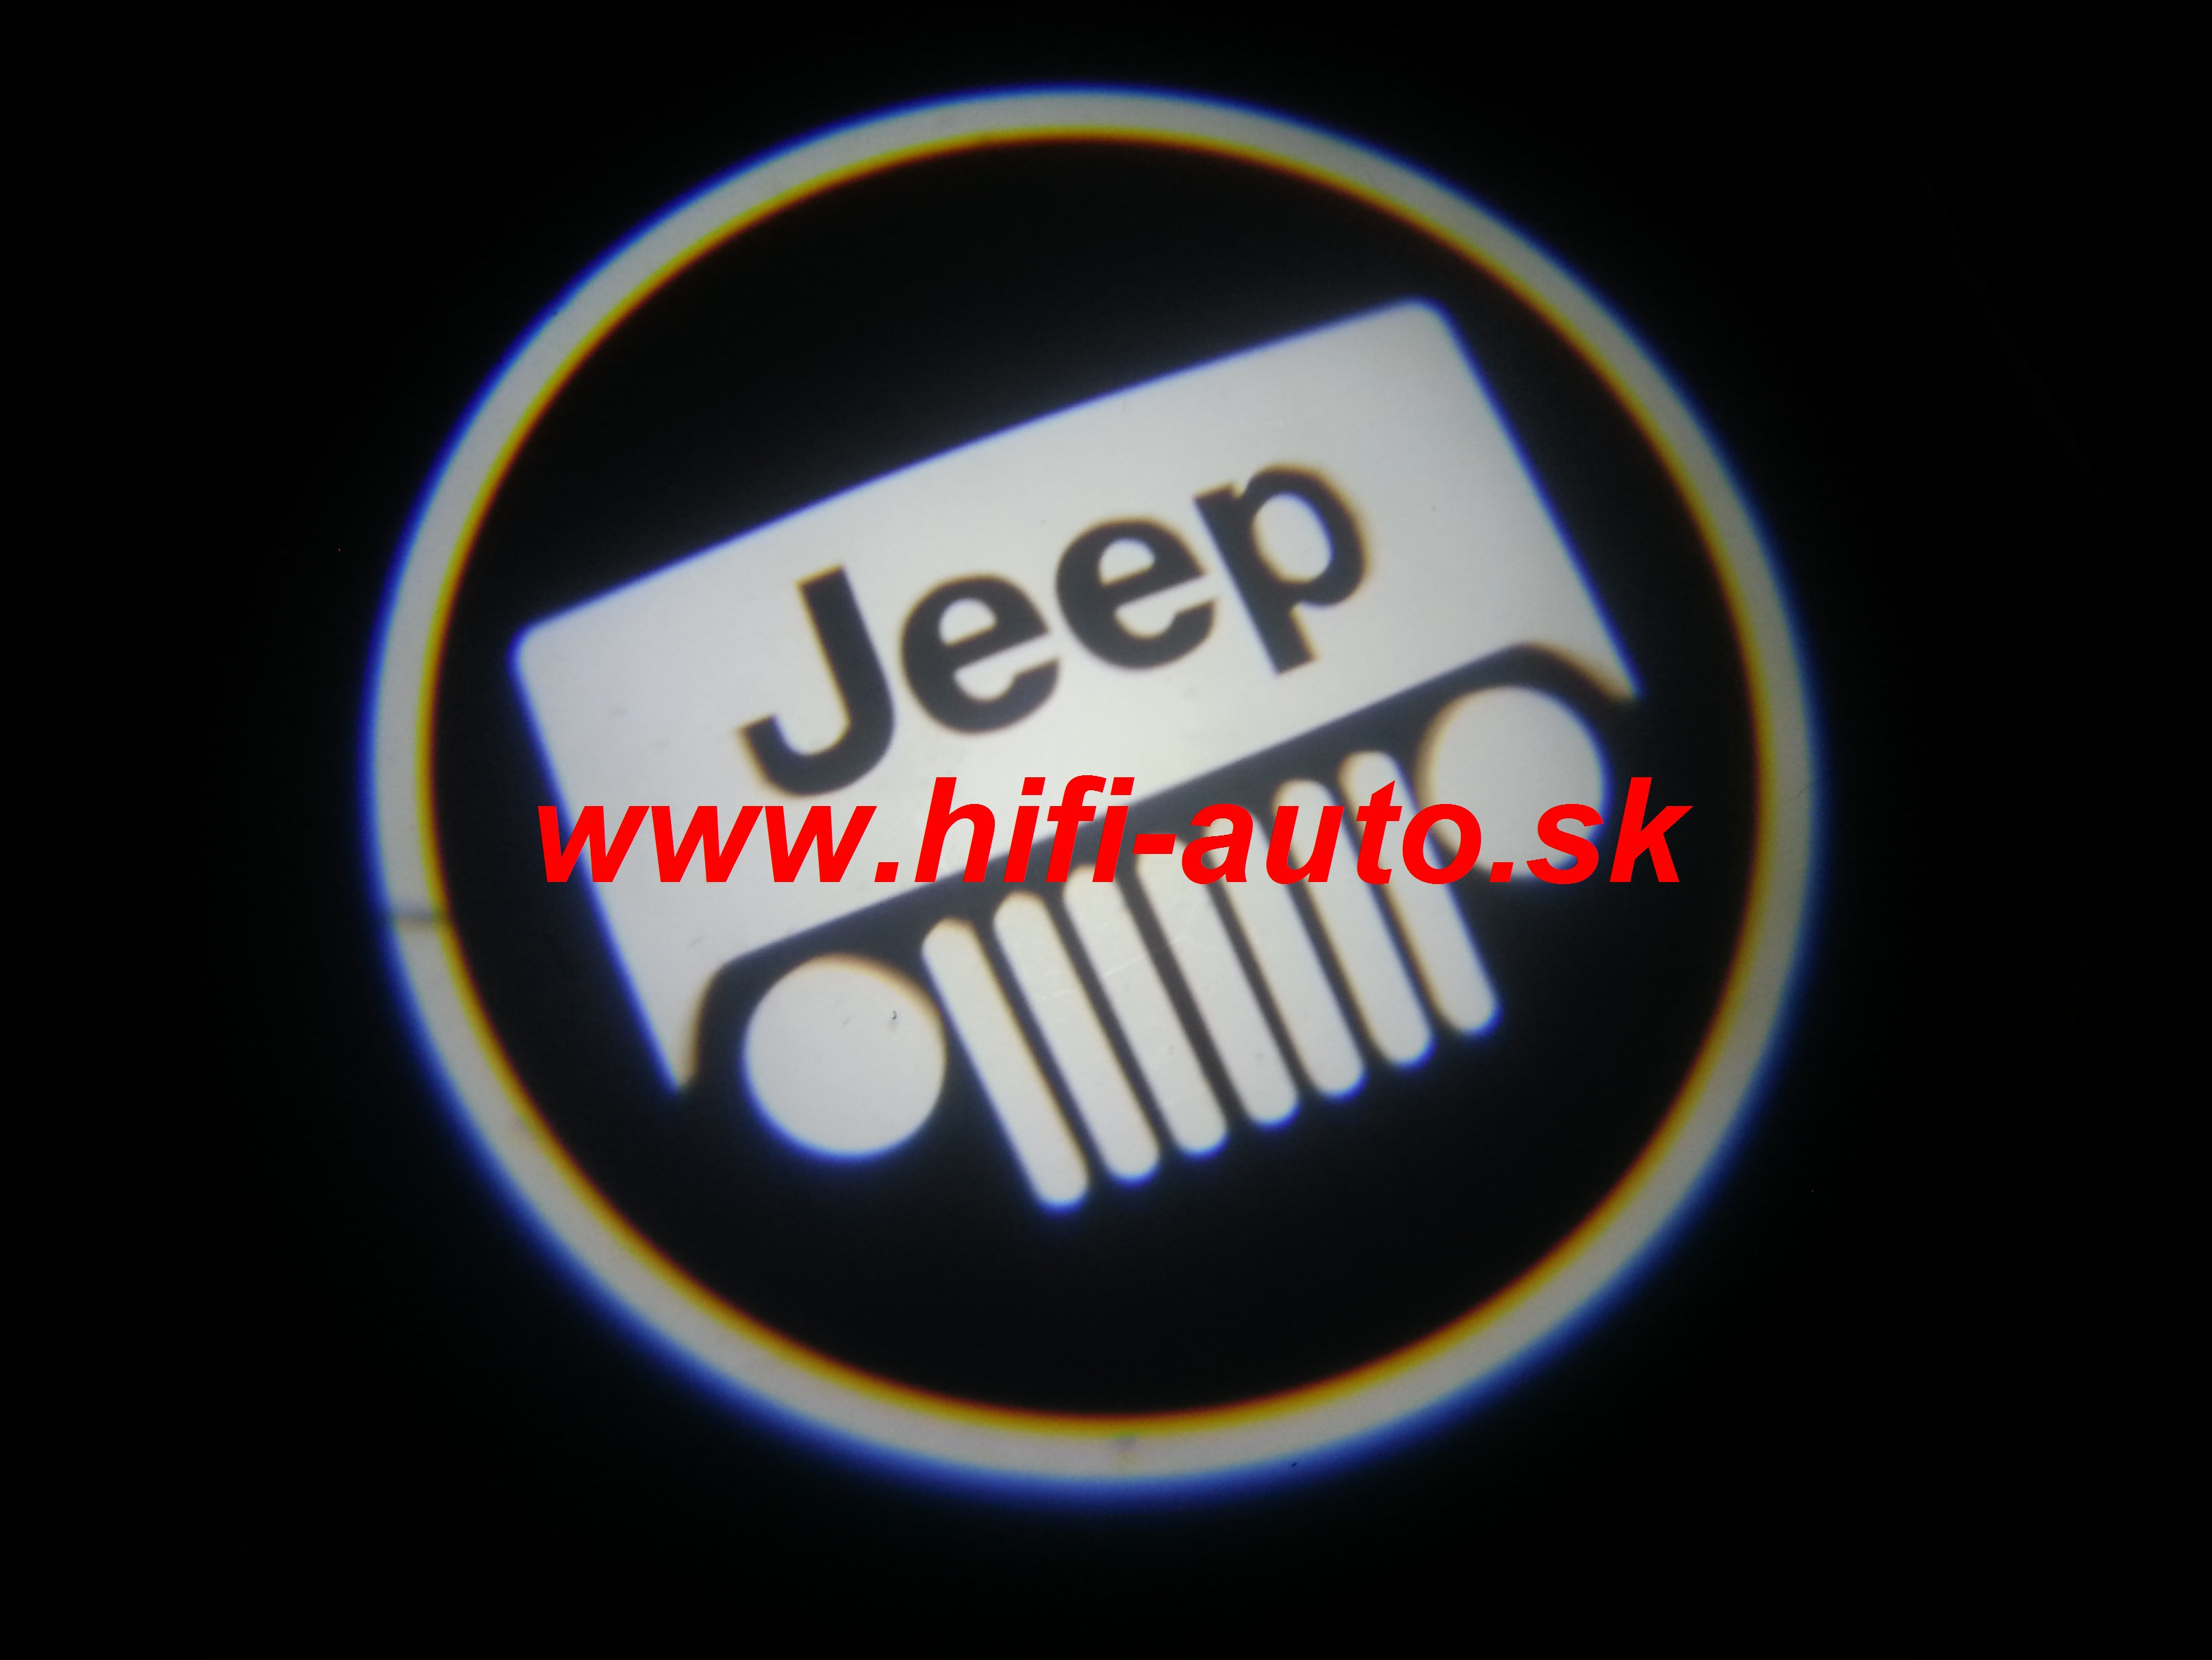 LED logo projektor Jeep